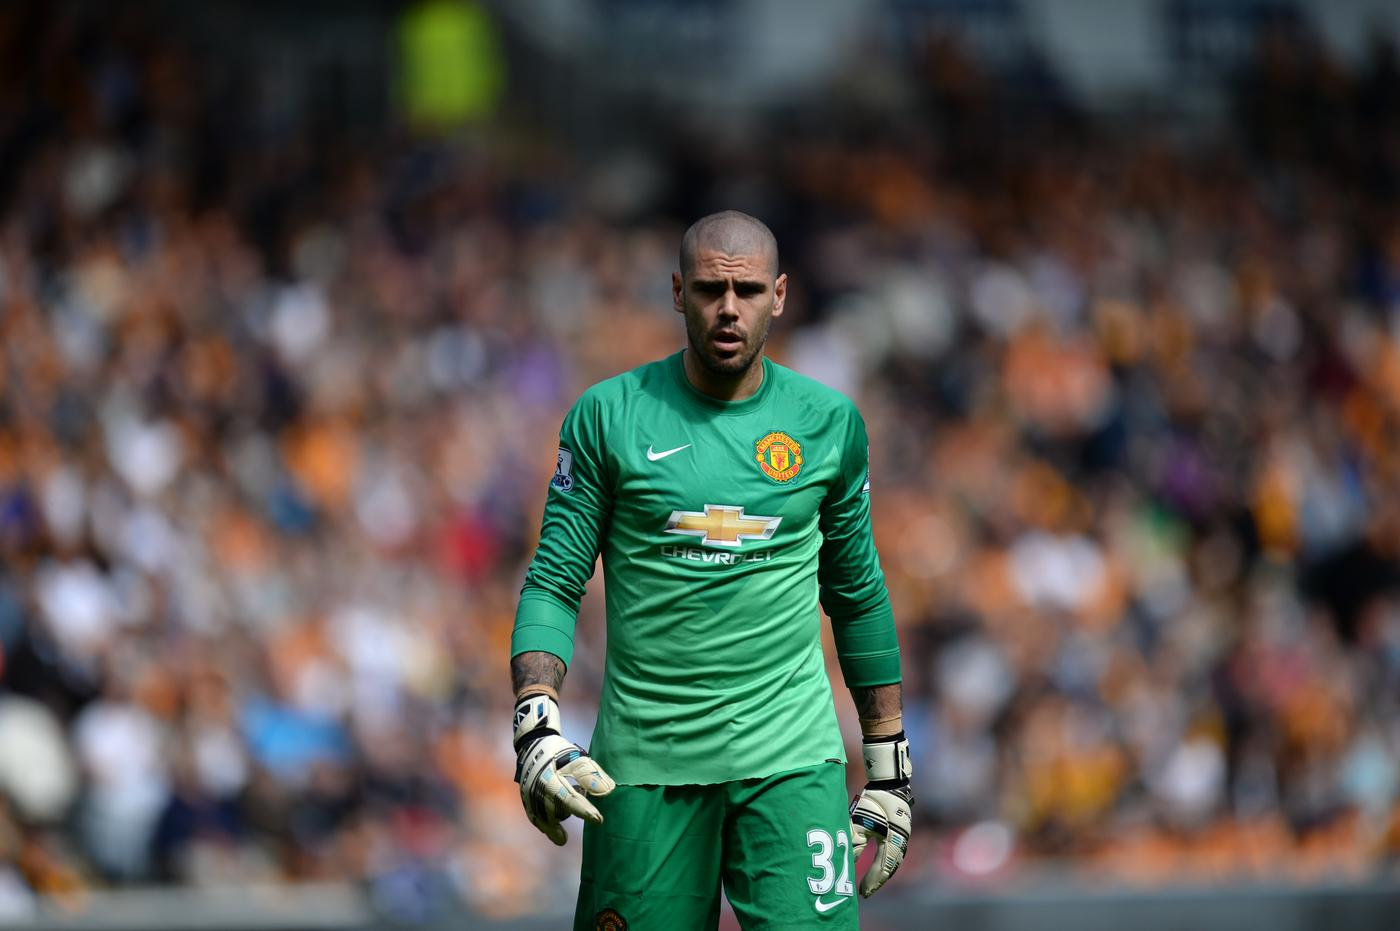 Iker Casillas hits out at 'ungrateful' Manchester United over Victor Valdes treatment